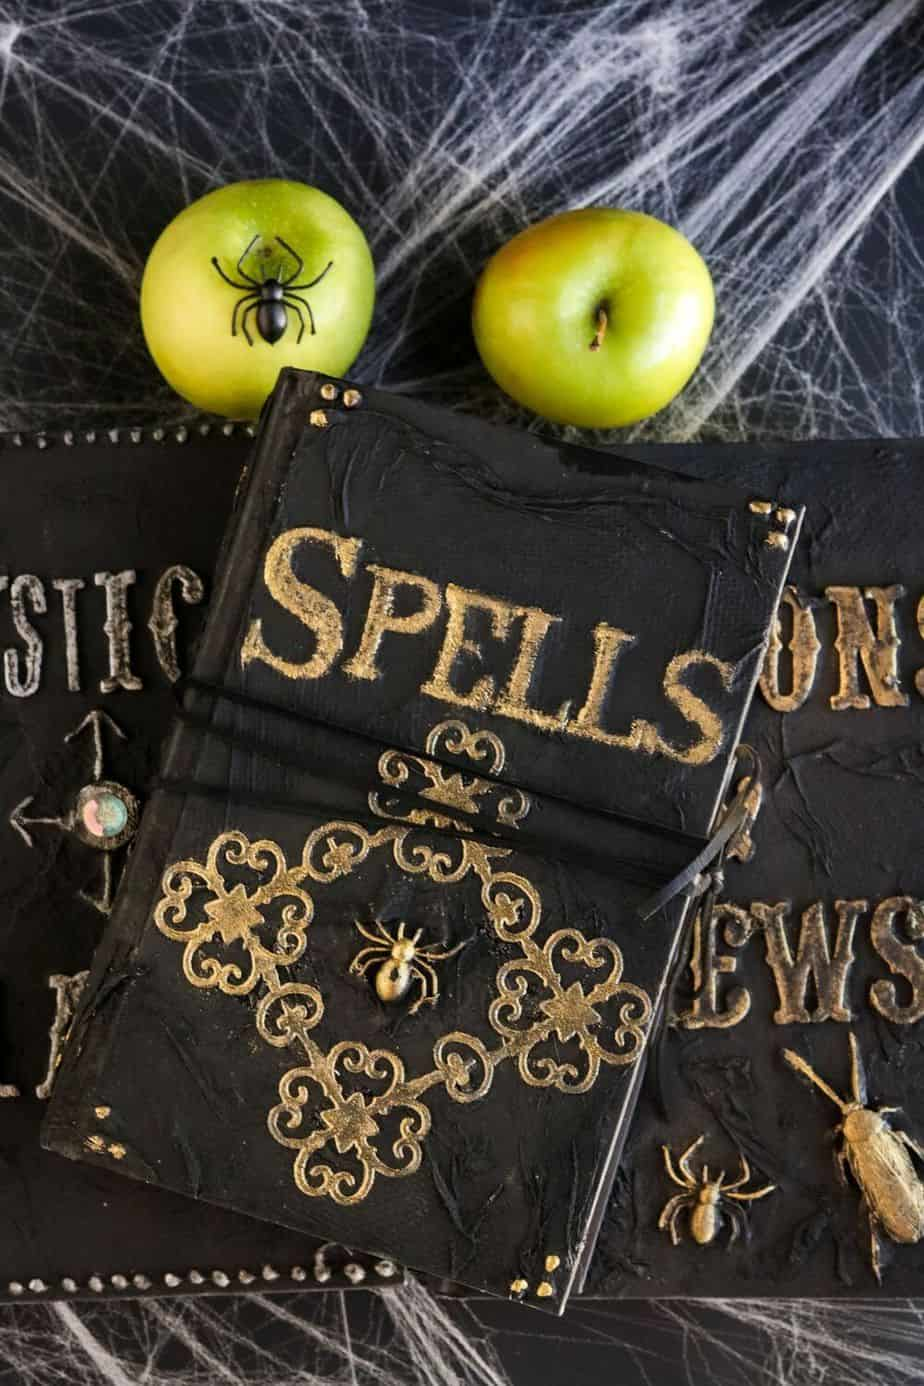 Cast a spell on your friends and family this Halloween. Create your own Halloween Spell Book with this easy craft tutorial. This Halloween craft is spellbinding! #halloweencraft #hocuspocus #halloweendecor